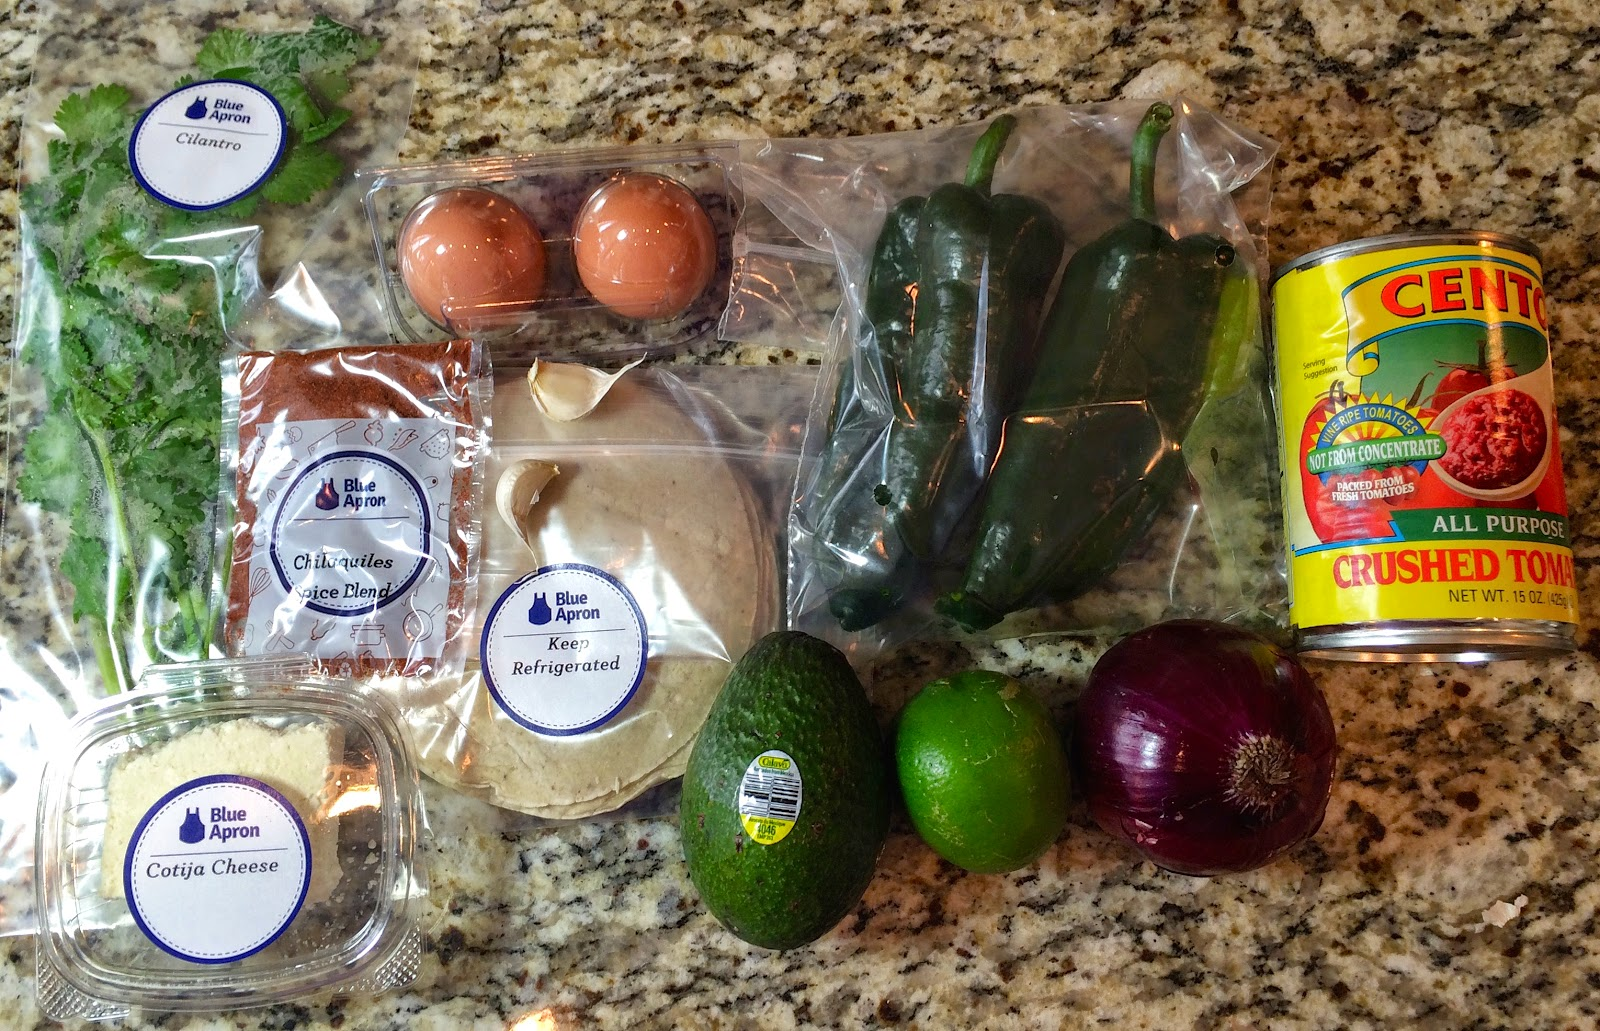 Blue apron ceo - Ingredients For Roasted Poblano Chilaquiles With Sunny Side Up Eggs Avocado